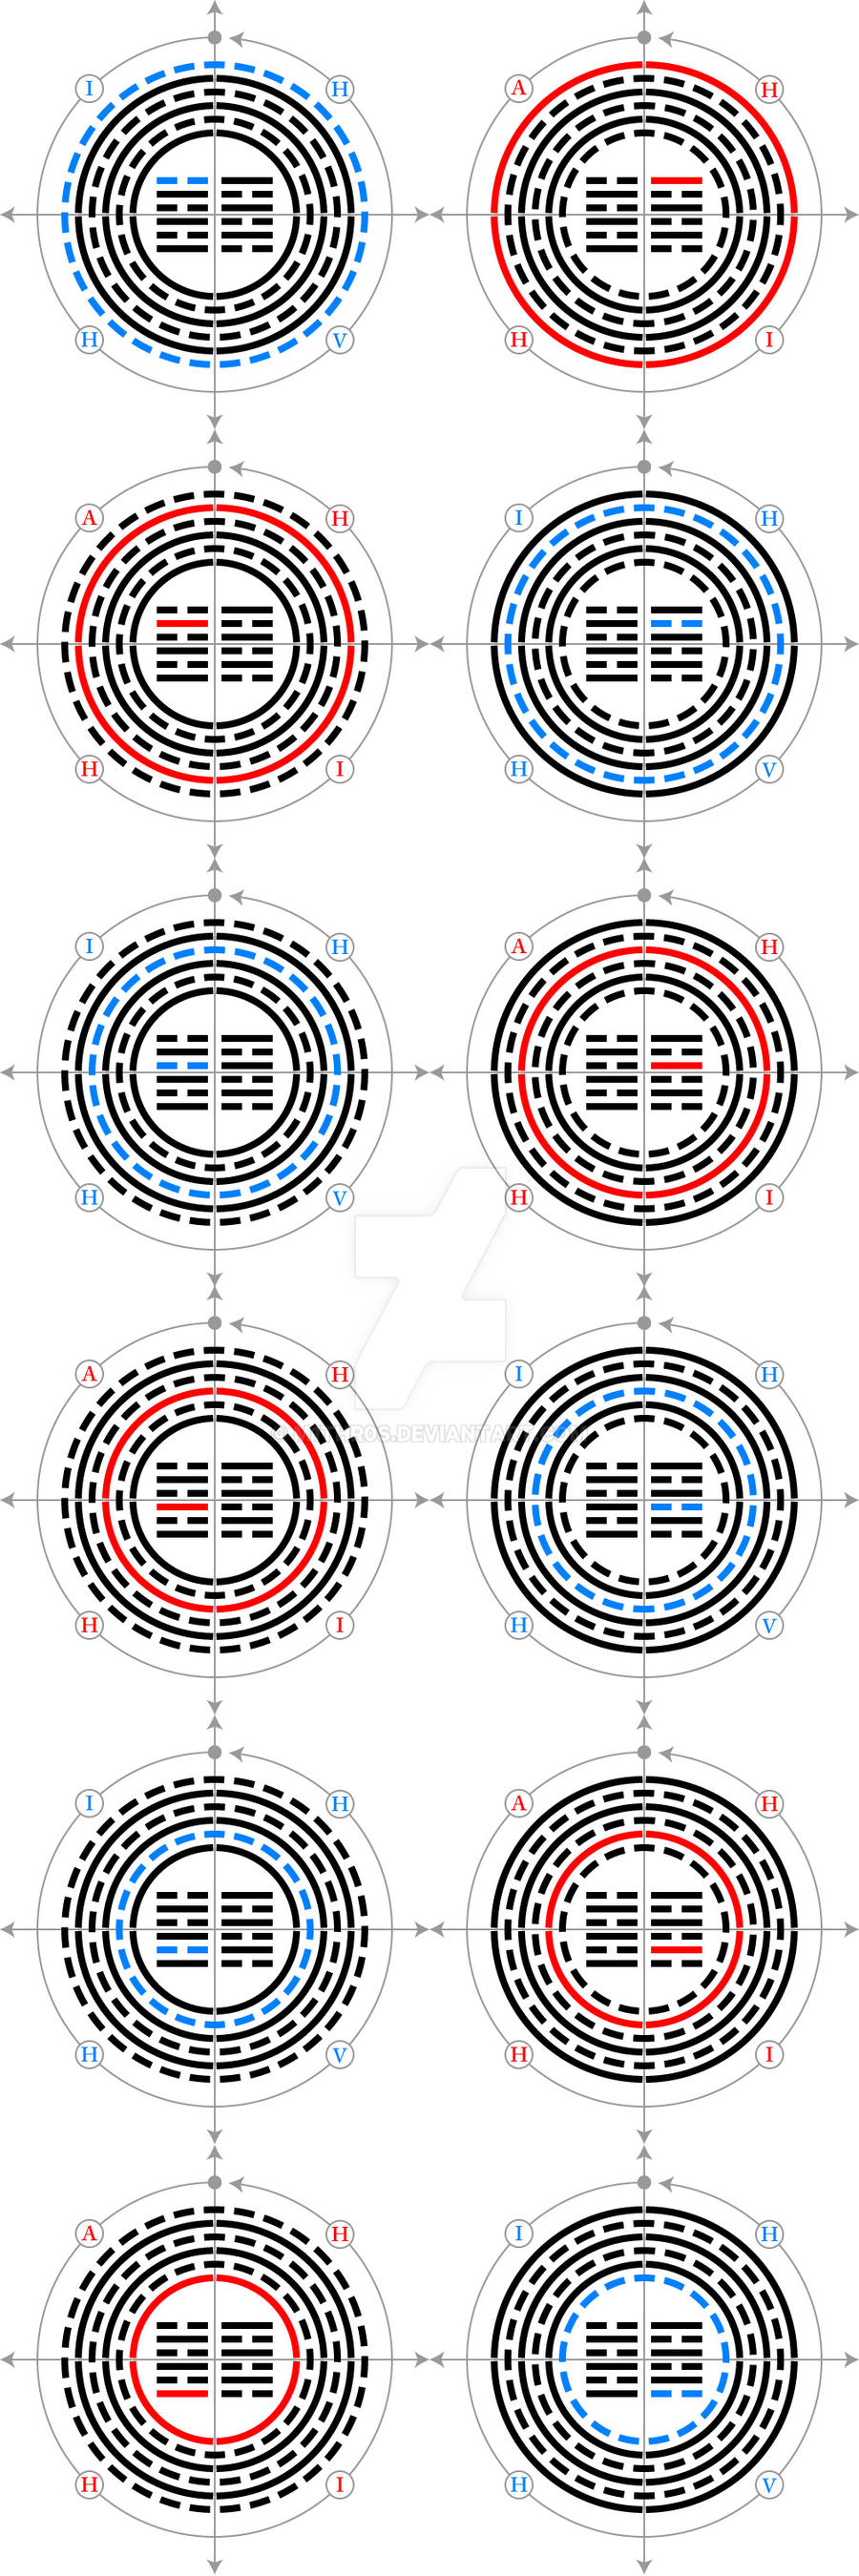 Hexagrams 63/64 Counter-Clockwise Rotation by m1thr0s